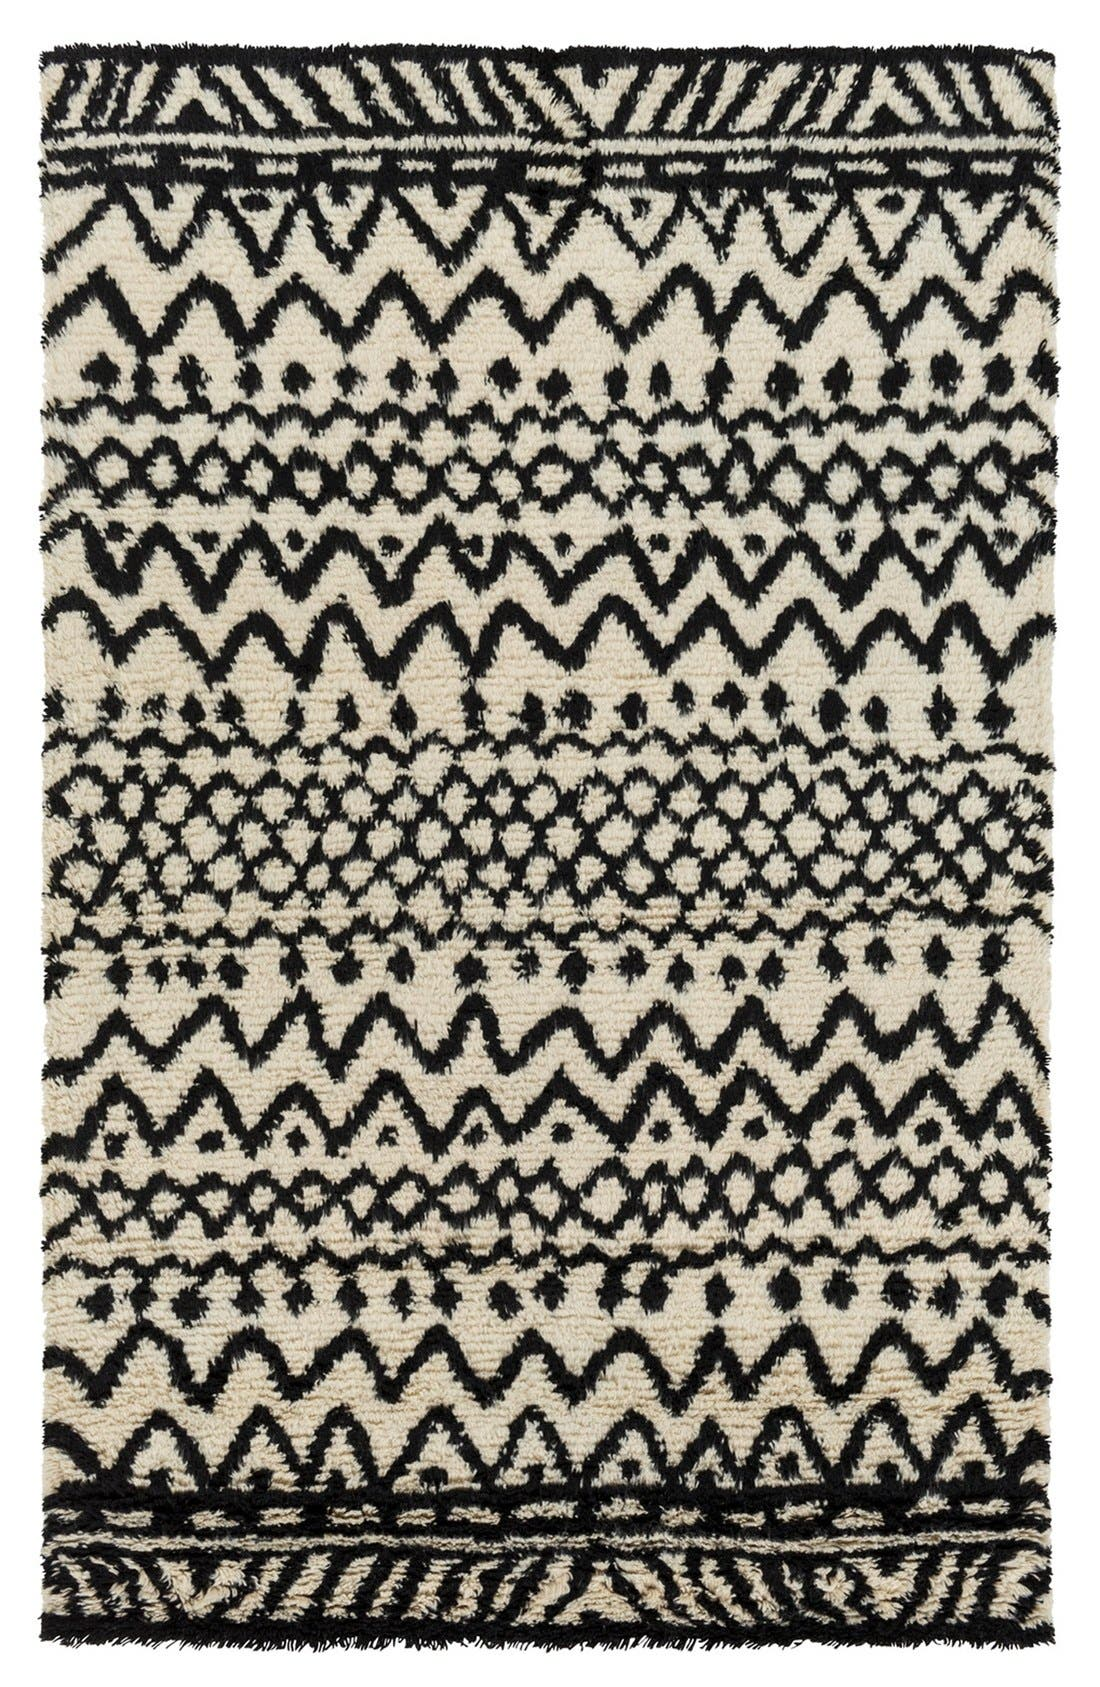 'Dwell C' Wool Rug,                         Main,                         color, Beige/ Charcoal